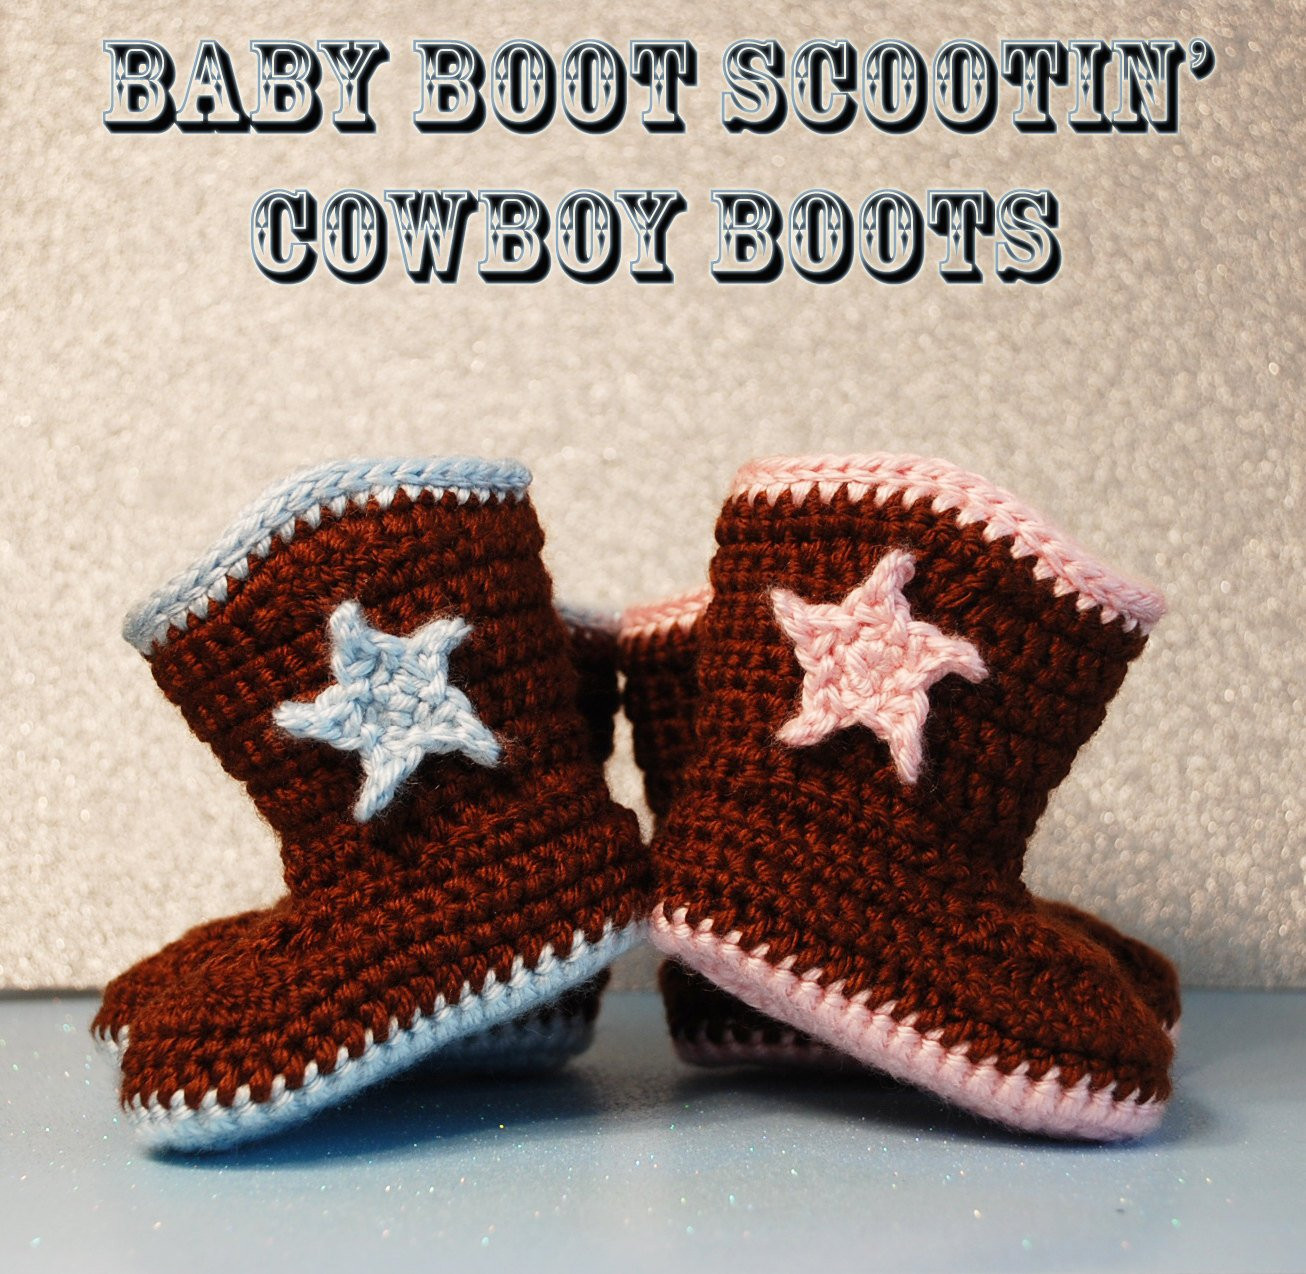 Crochet Cowboy Boots New Crochet Shoes Cowboy Boots Nb 12 Months Made to order Of Marvelous 49 Pictures Crochet Cowboy Boots